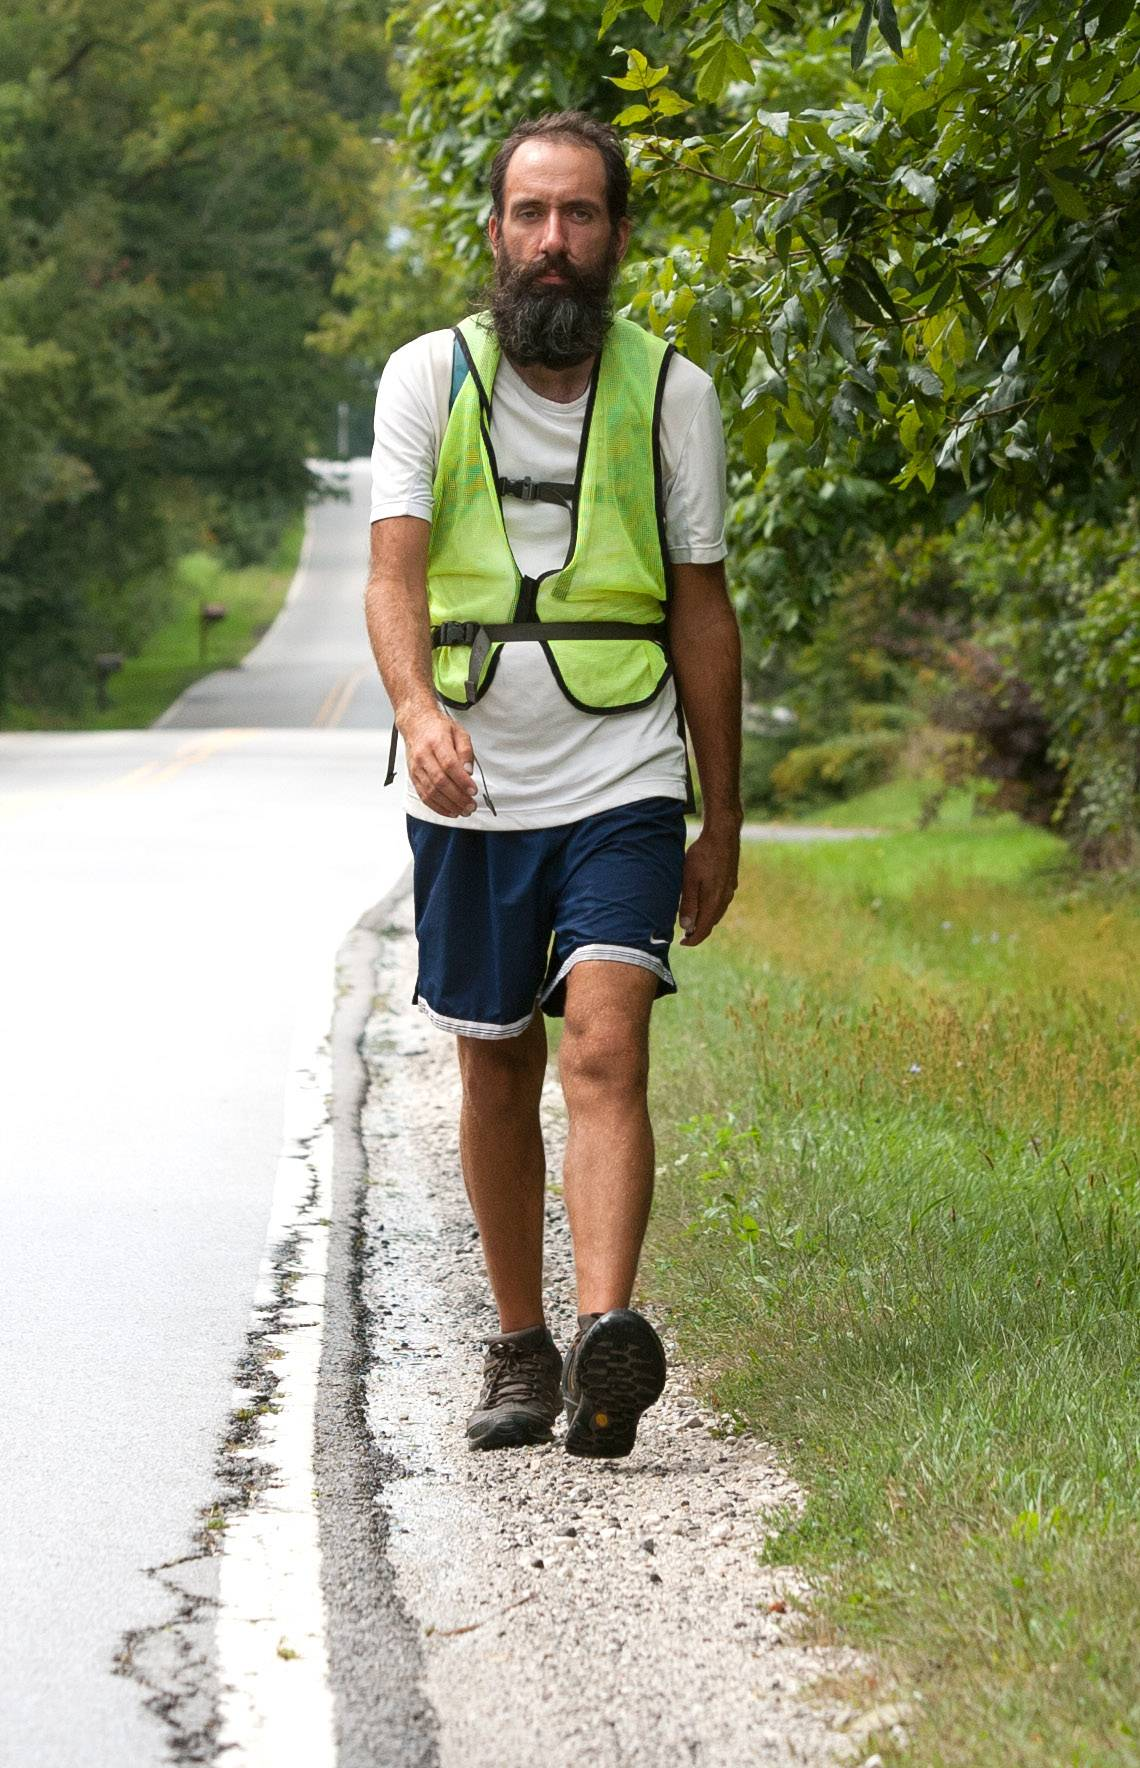 Jeffrey Czerwiec of Des Moines, Iowa, walks down Mack Road in Warrenville Thursday. He is one of three dozen activists taking part in a cross-country trek from Los Angeles to Washington D.C. called the Great March for Climate Action.